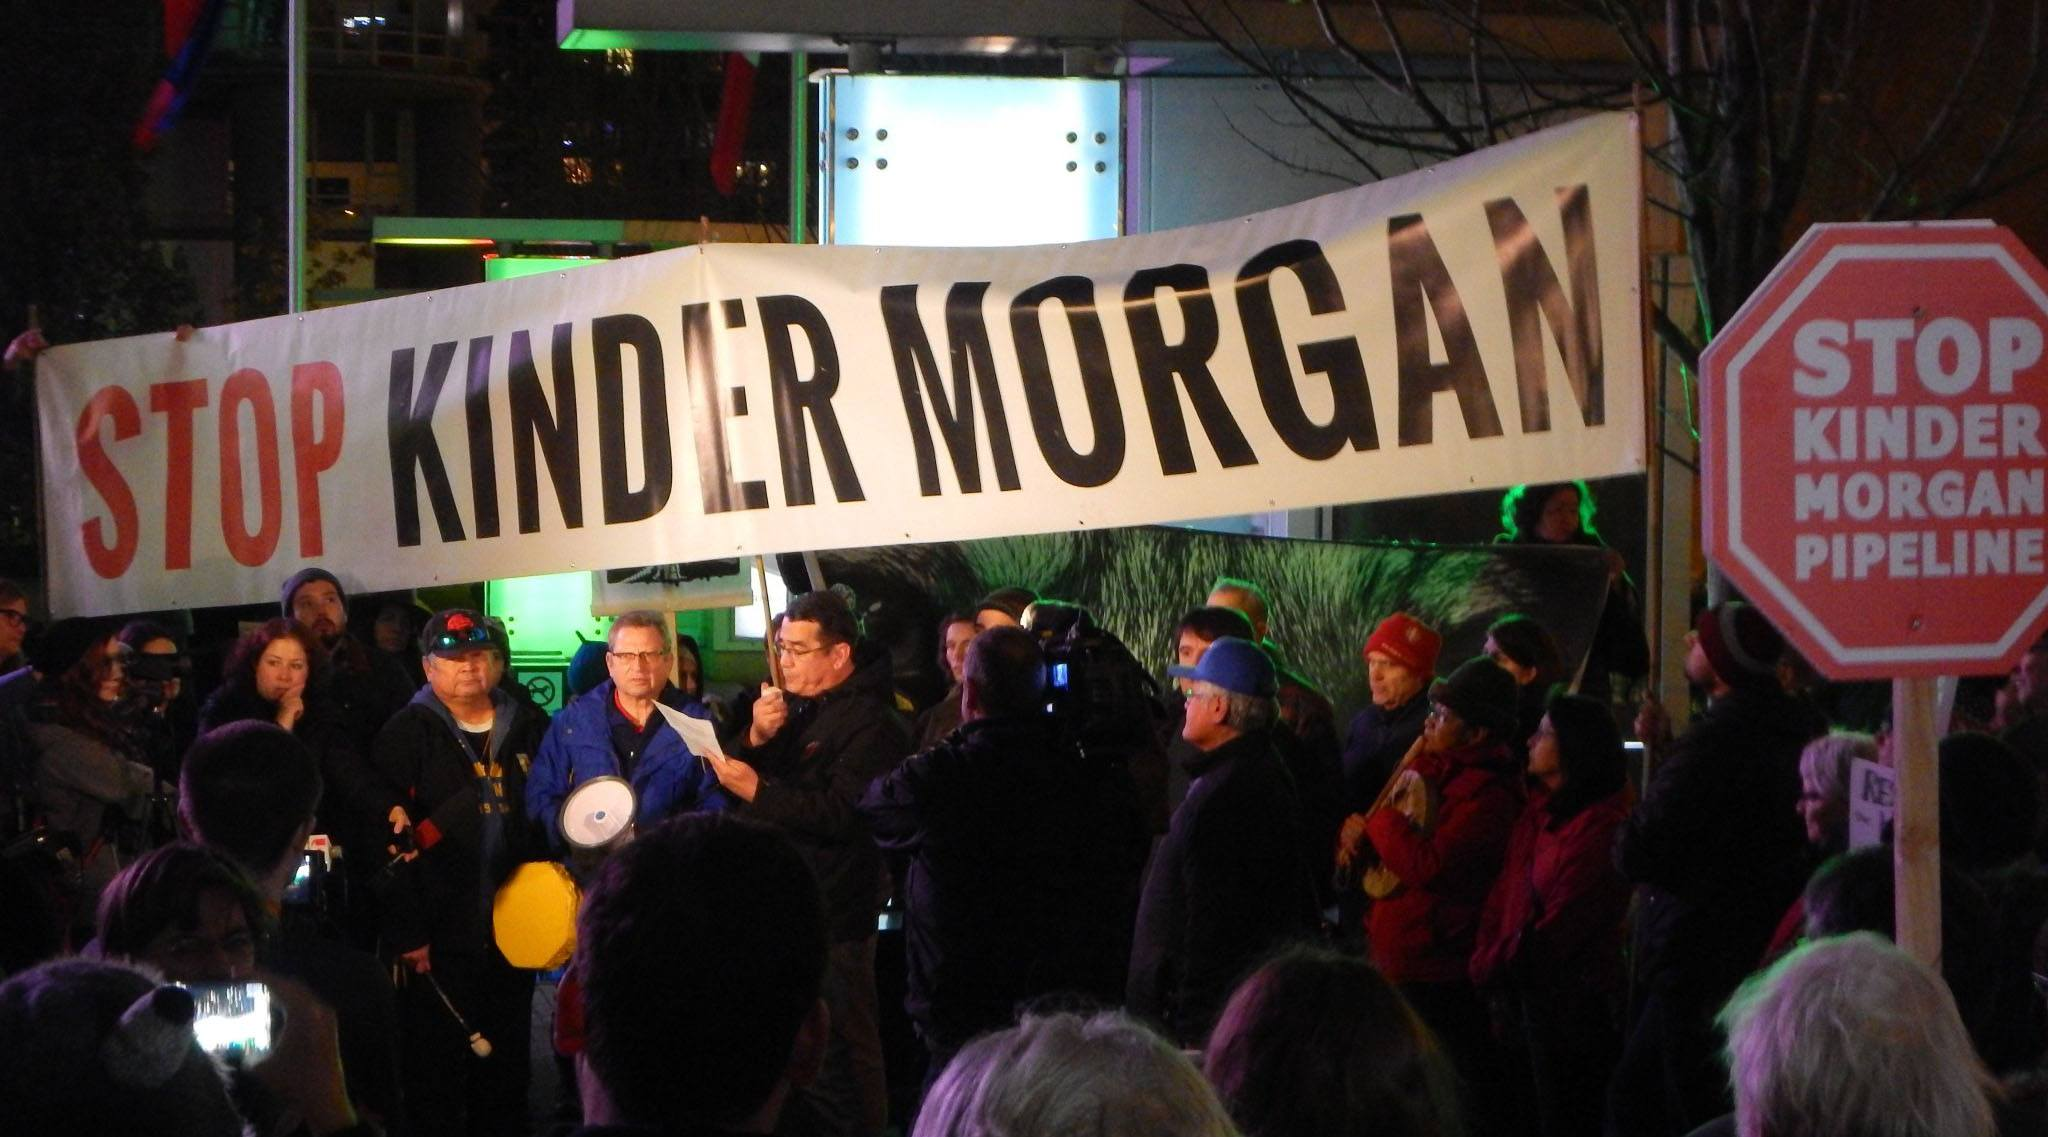 Stop kinder morgan protesters at a previous rally himy syed twitter